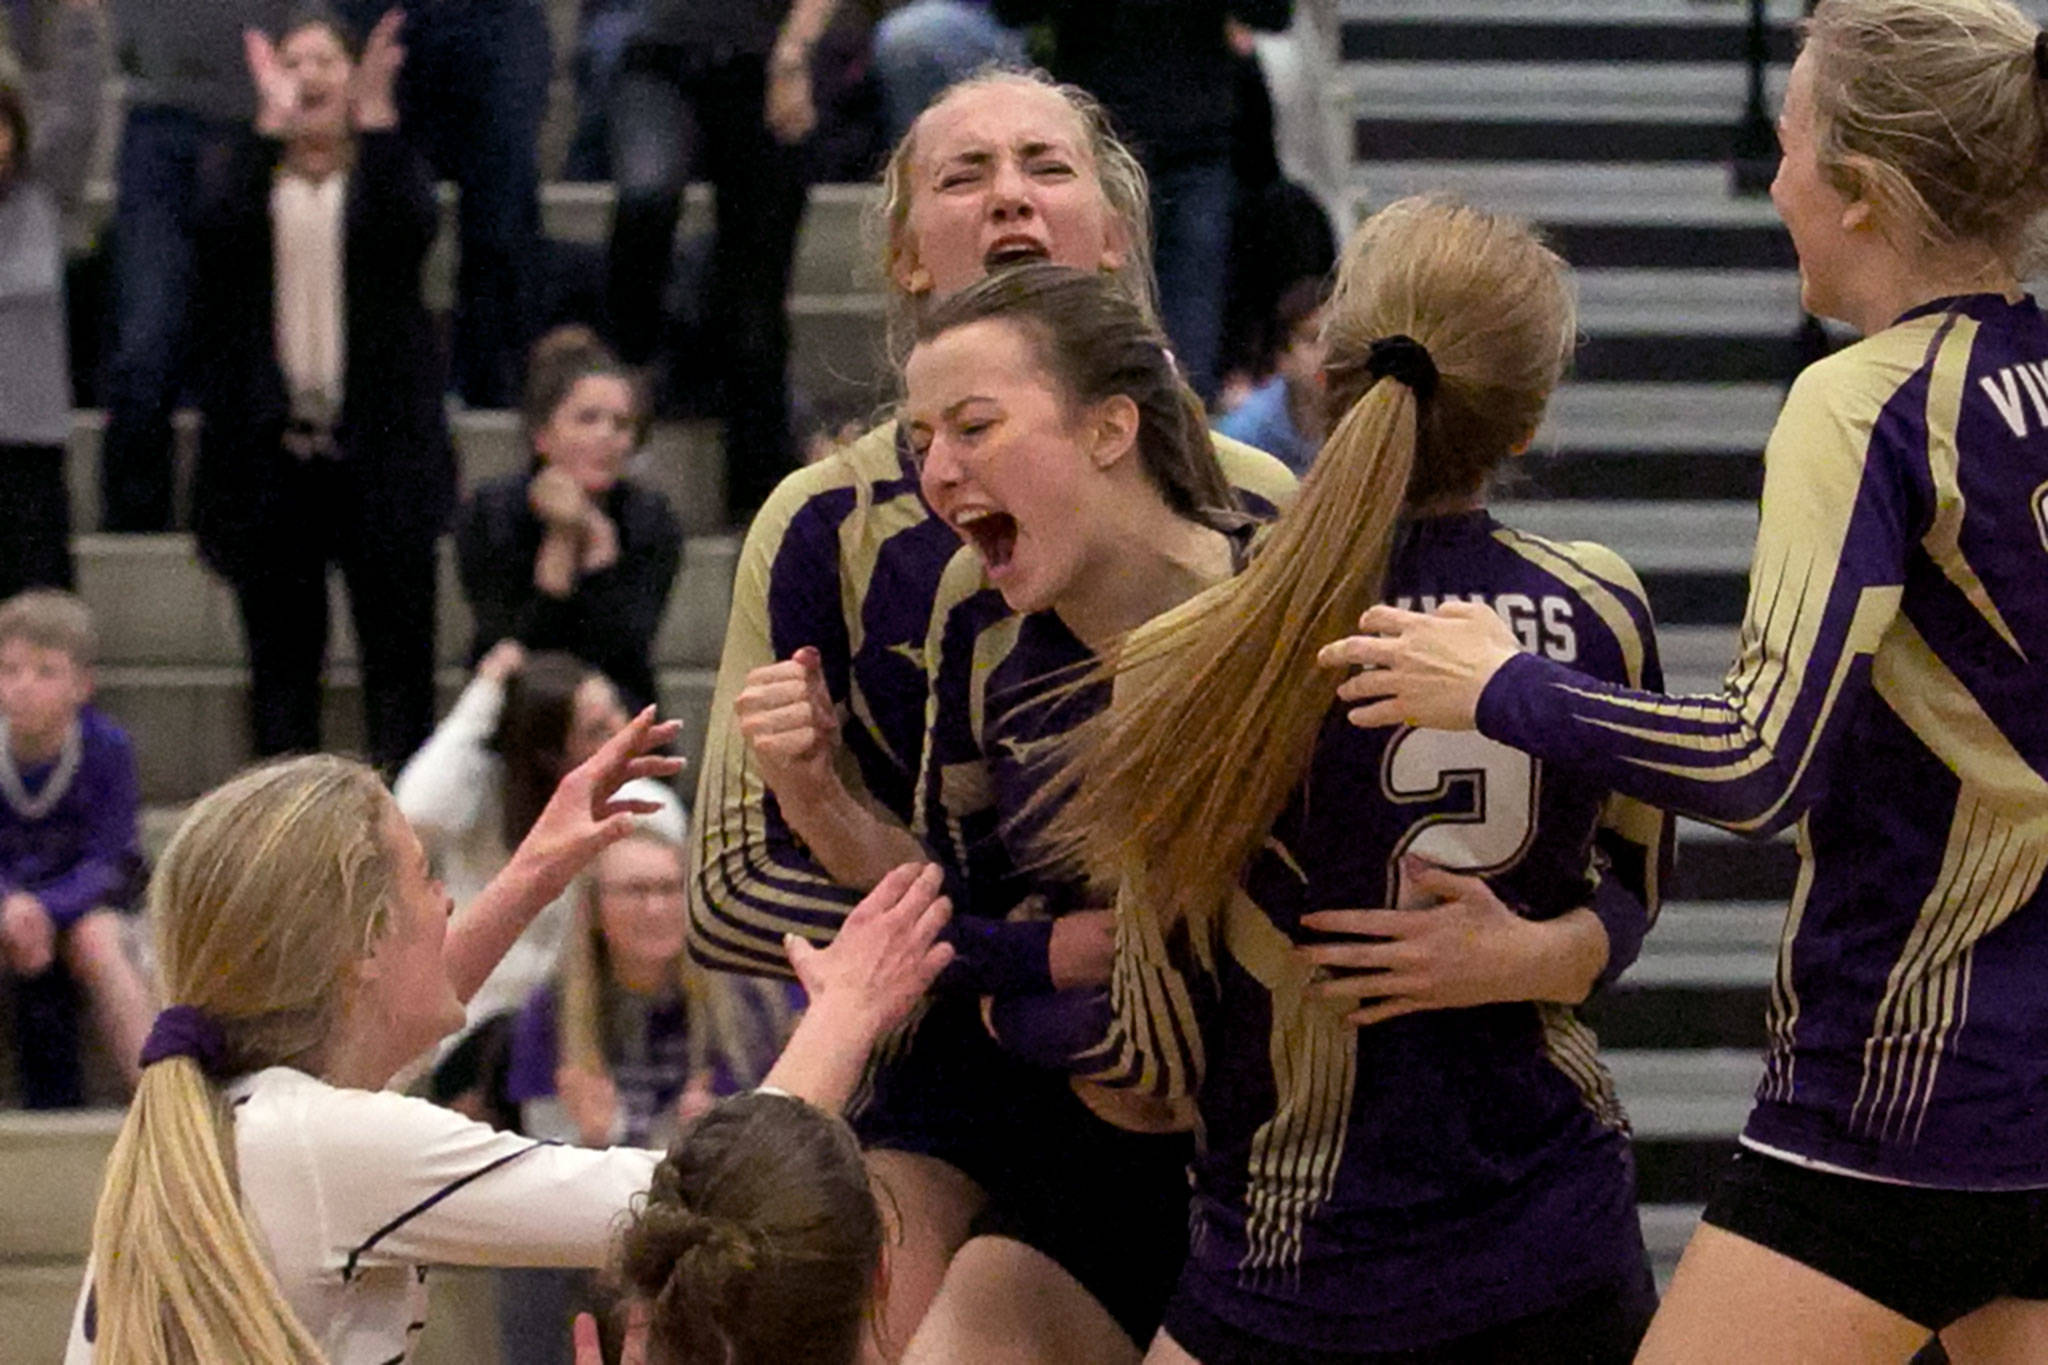 Lake Stevens players celebrate their 21-19 win in the fifth set against Issaquah during the Wes-King 4A District Tournament on Nov. 6, 2018, at Bothell High School. (Kevin Clark / The Herald)